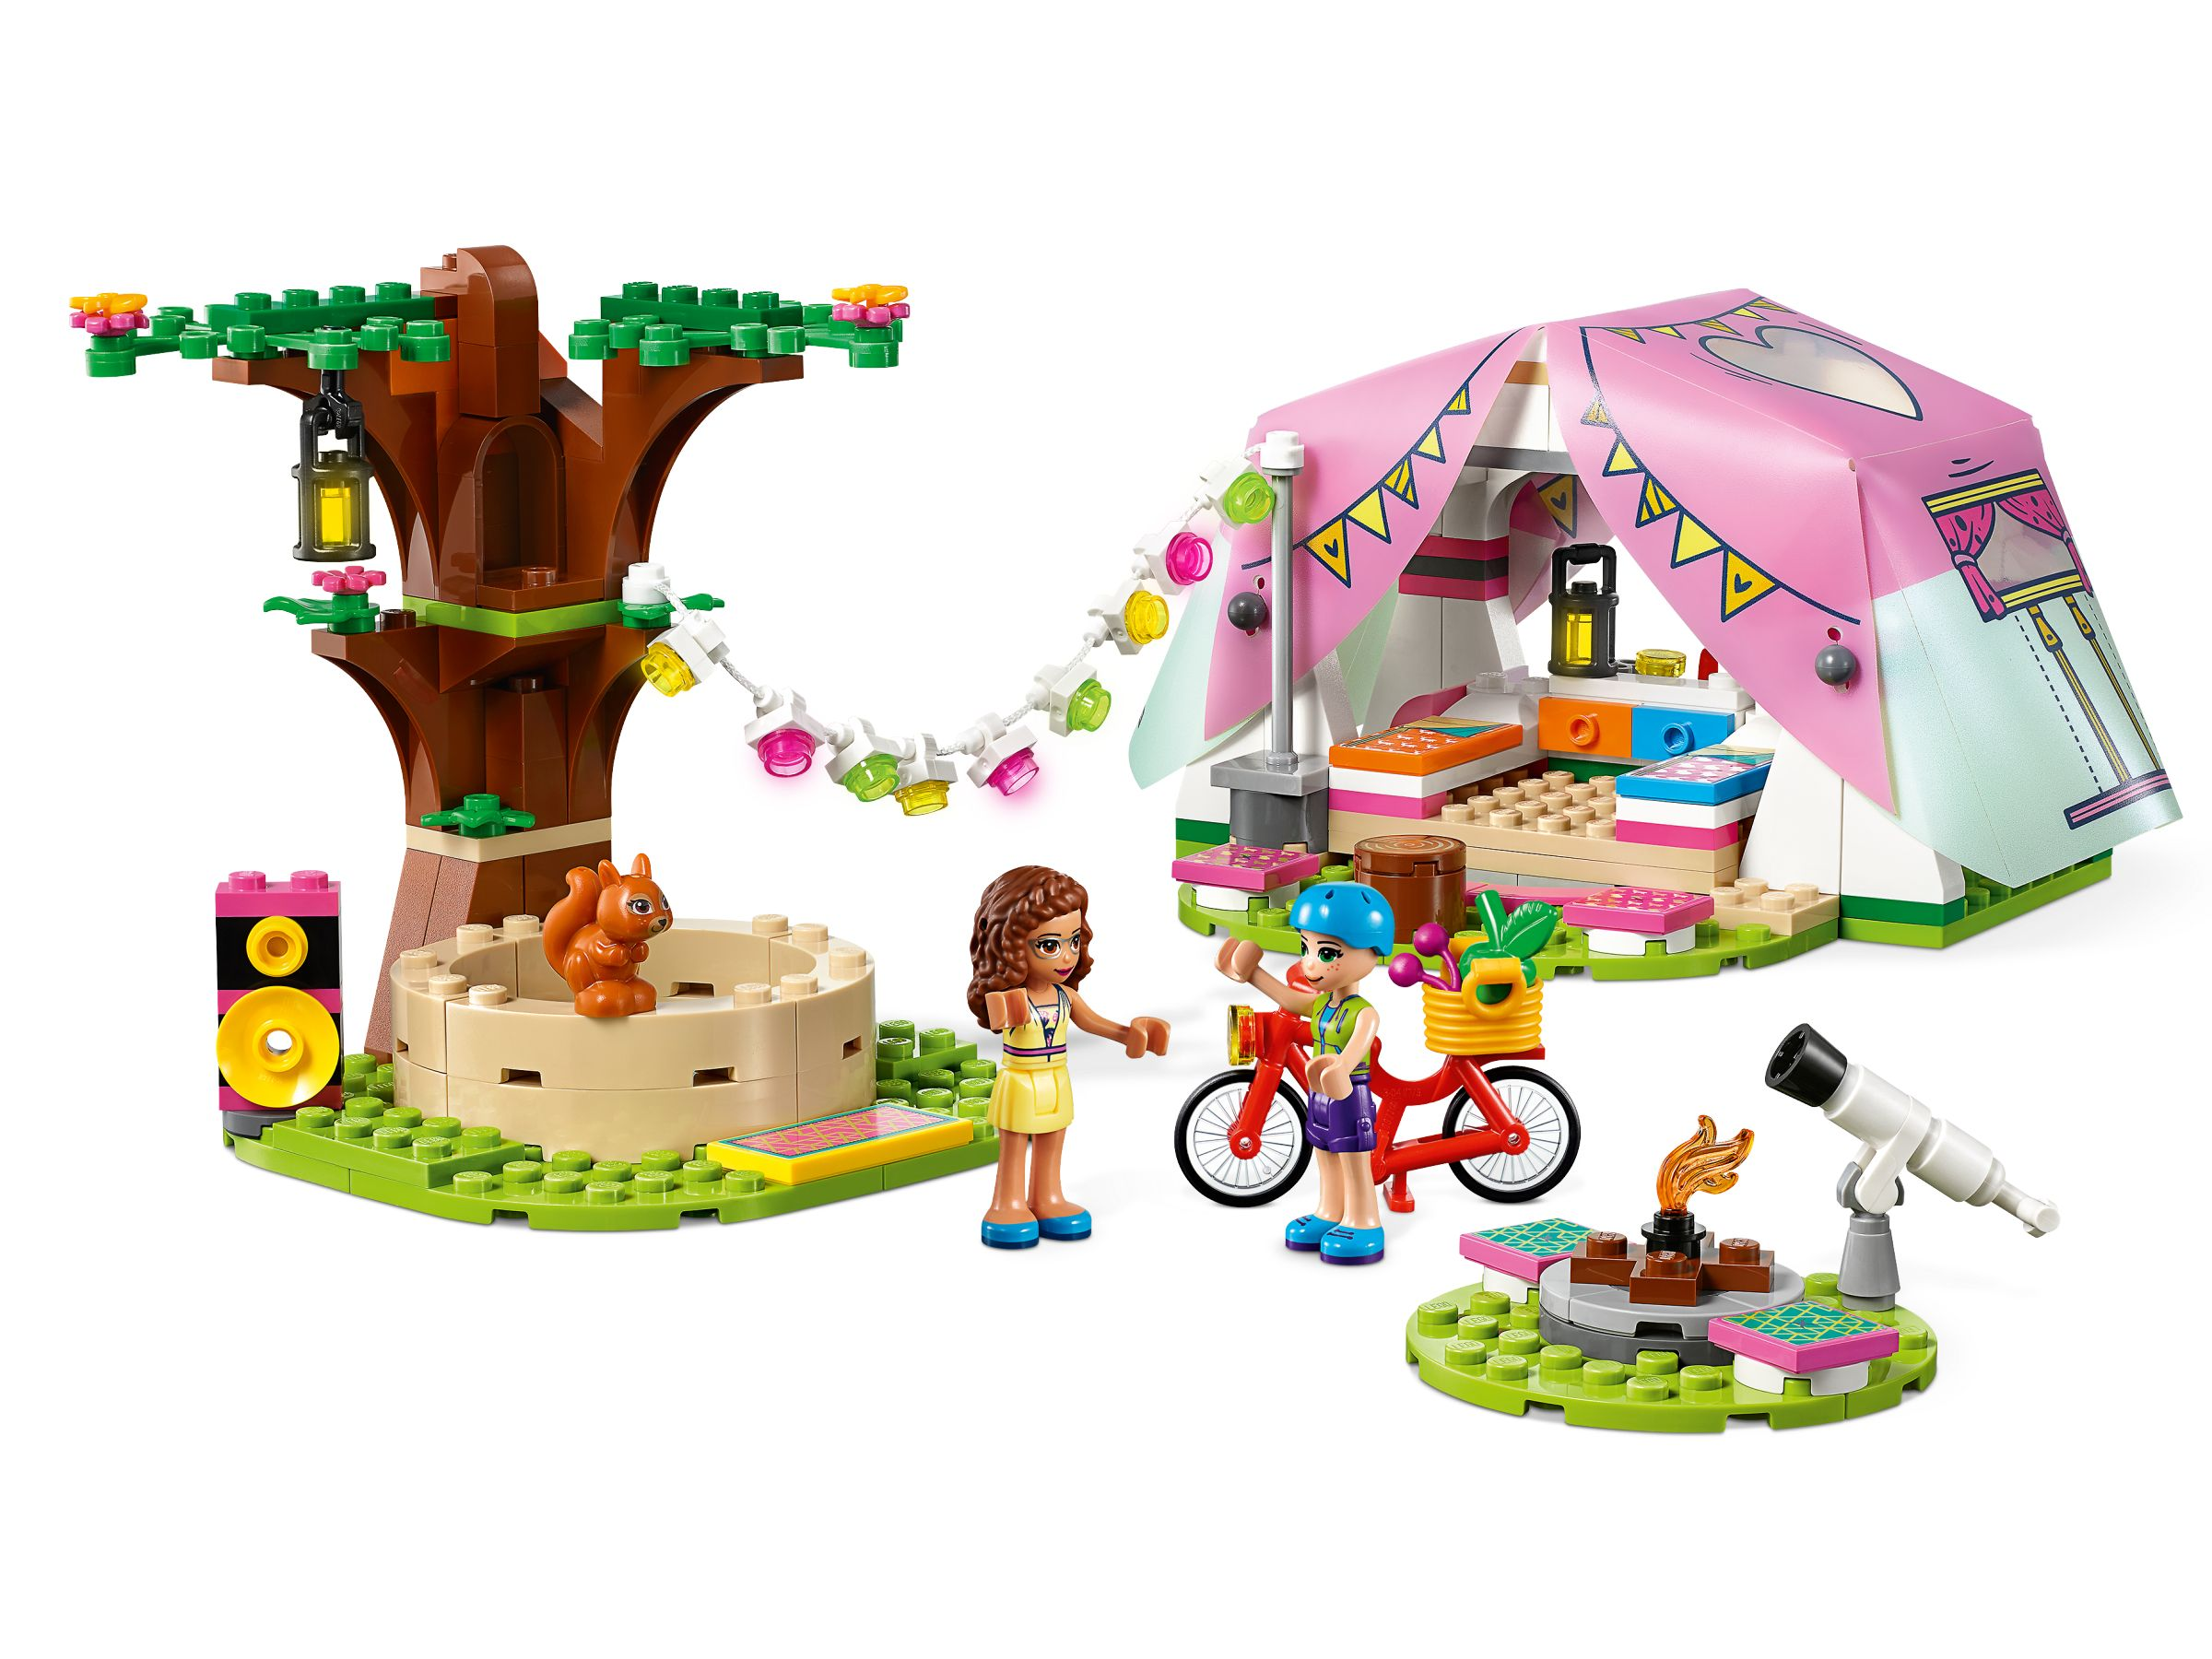 LEGO Friends 41392 Camping in Heartlake City LEGO_41392_alt3.jpg